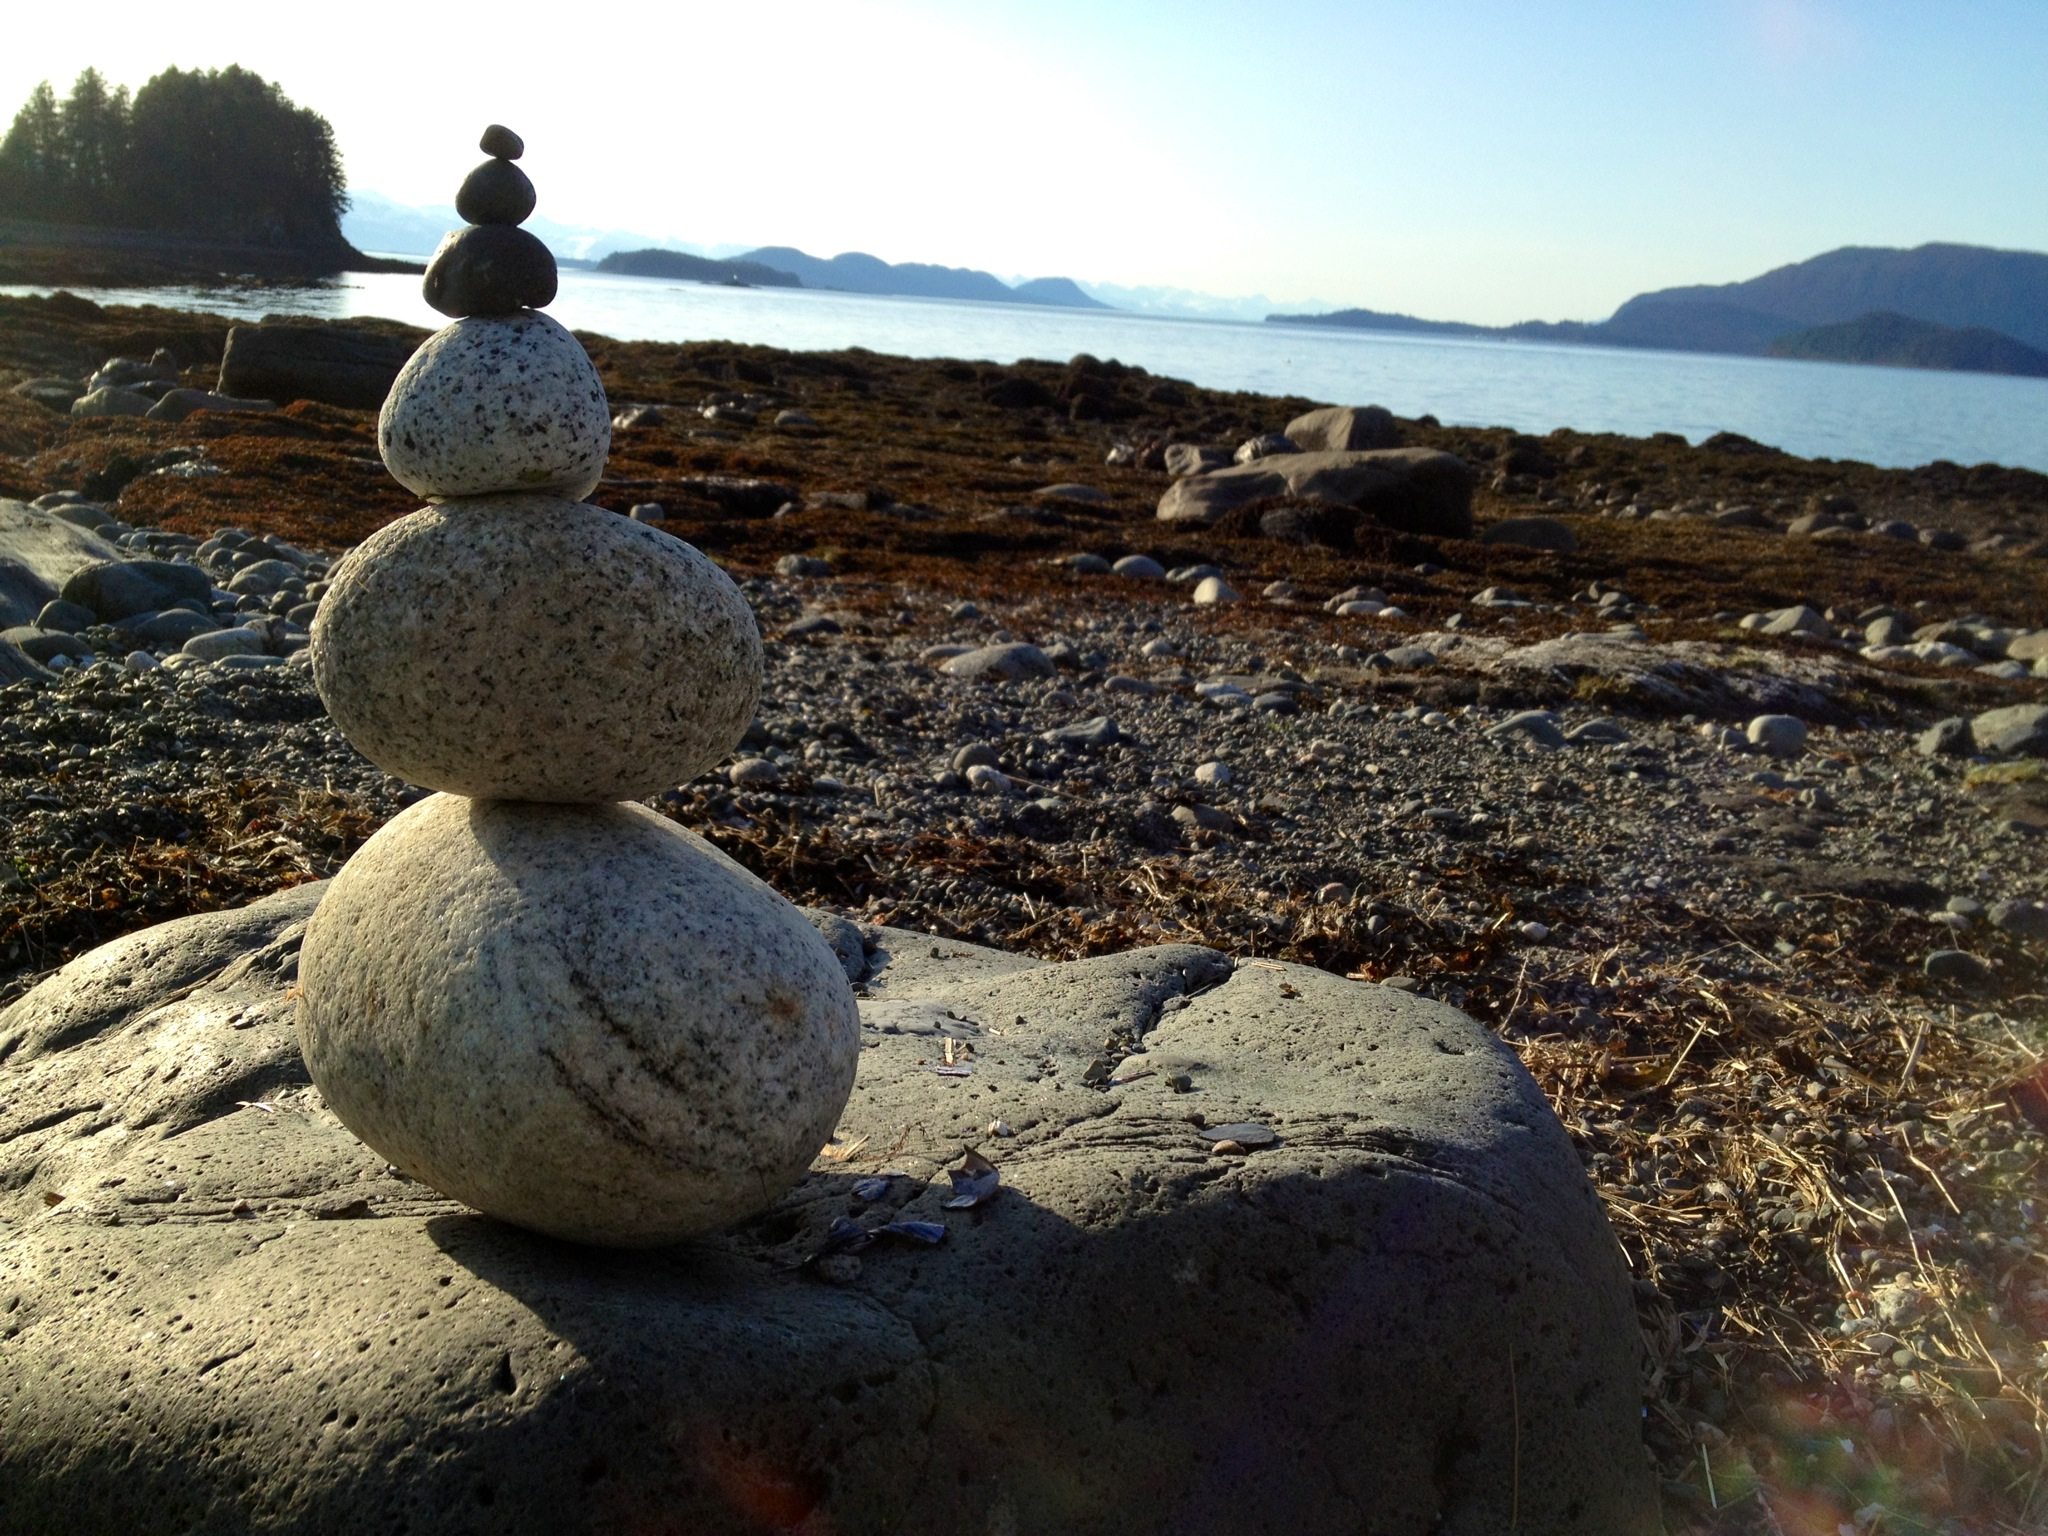 The sun compelled me to construct a small cairn on the beach on Douglas Island.